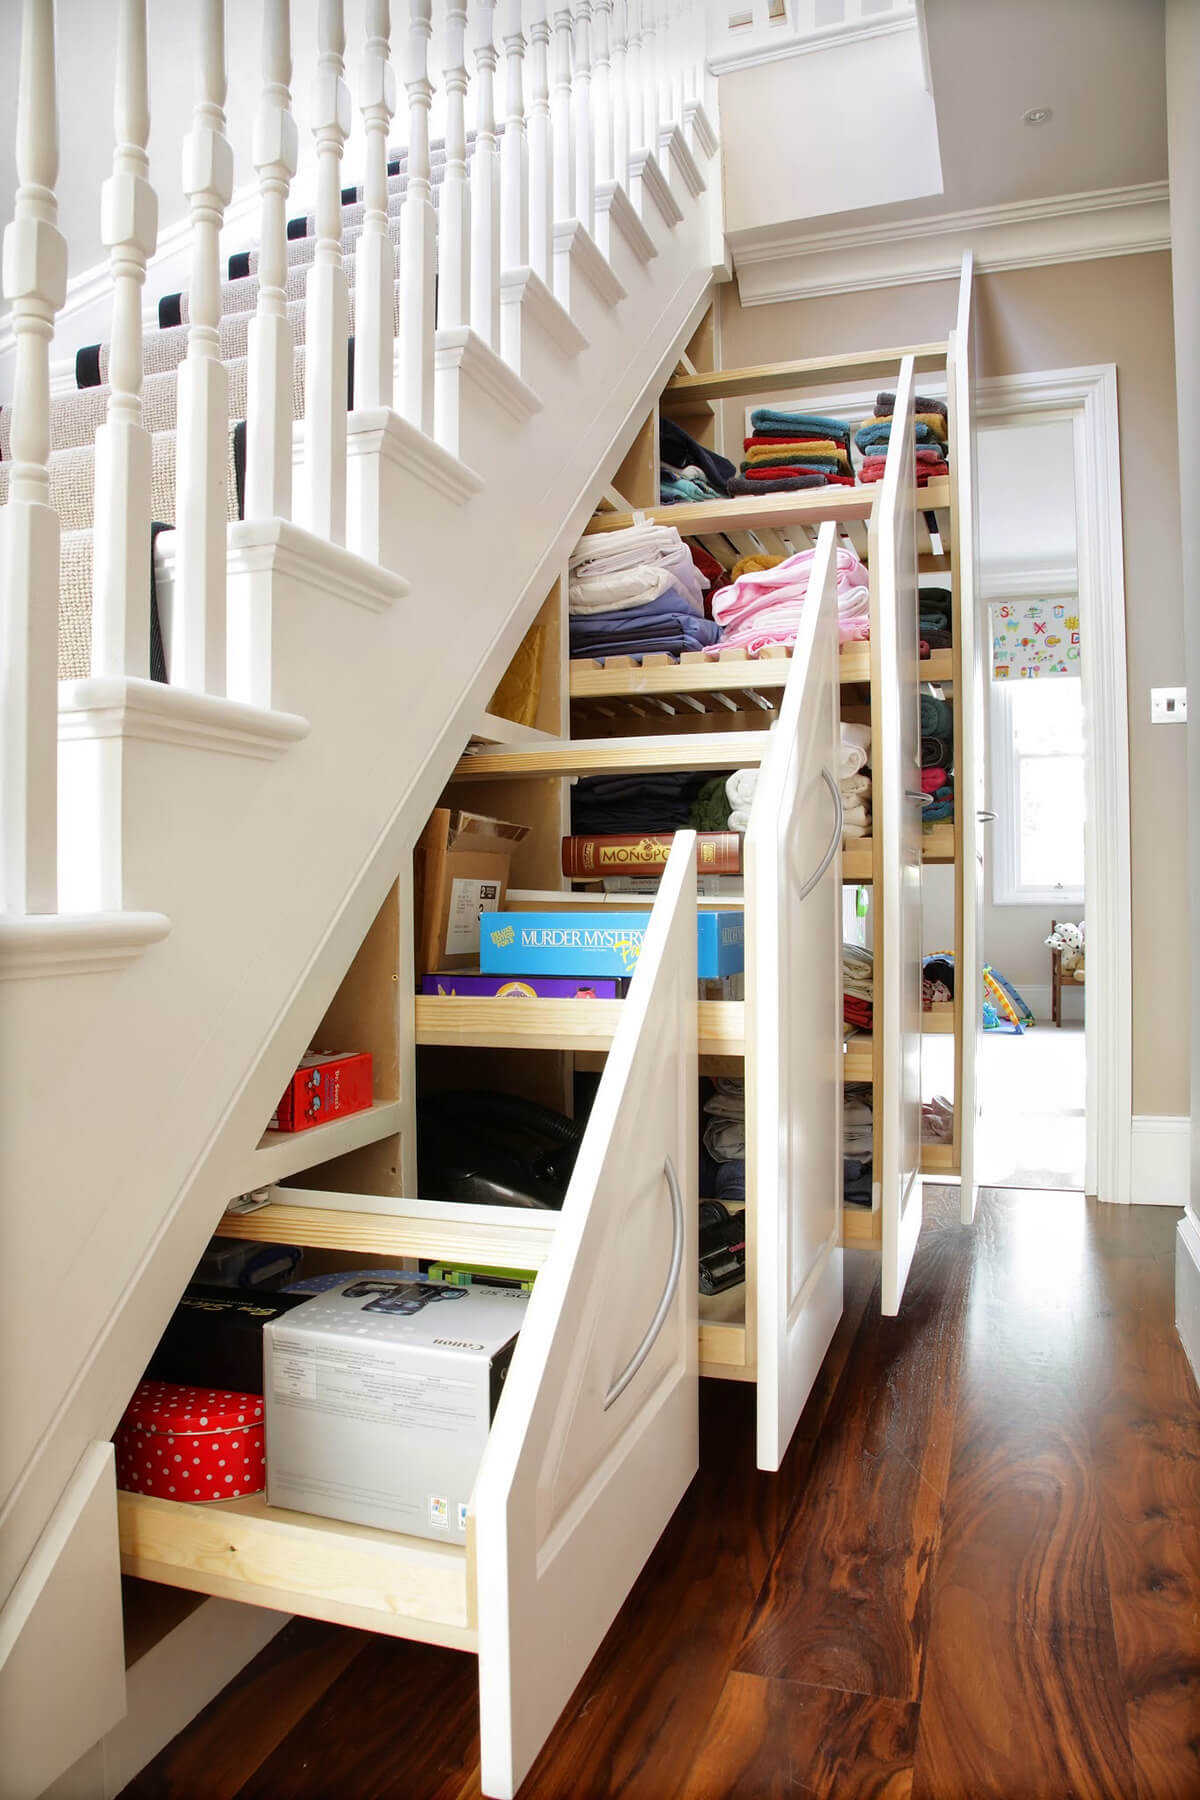 11 Best Space Saving Ideas and Projects for 11